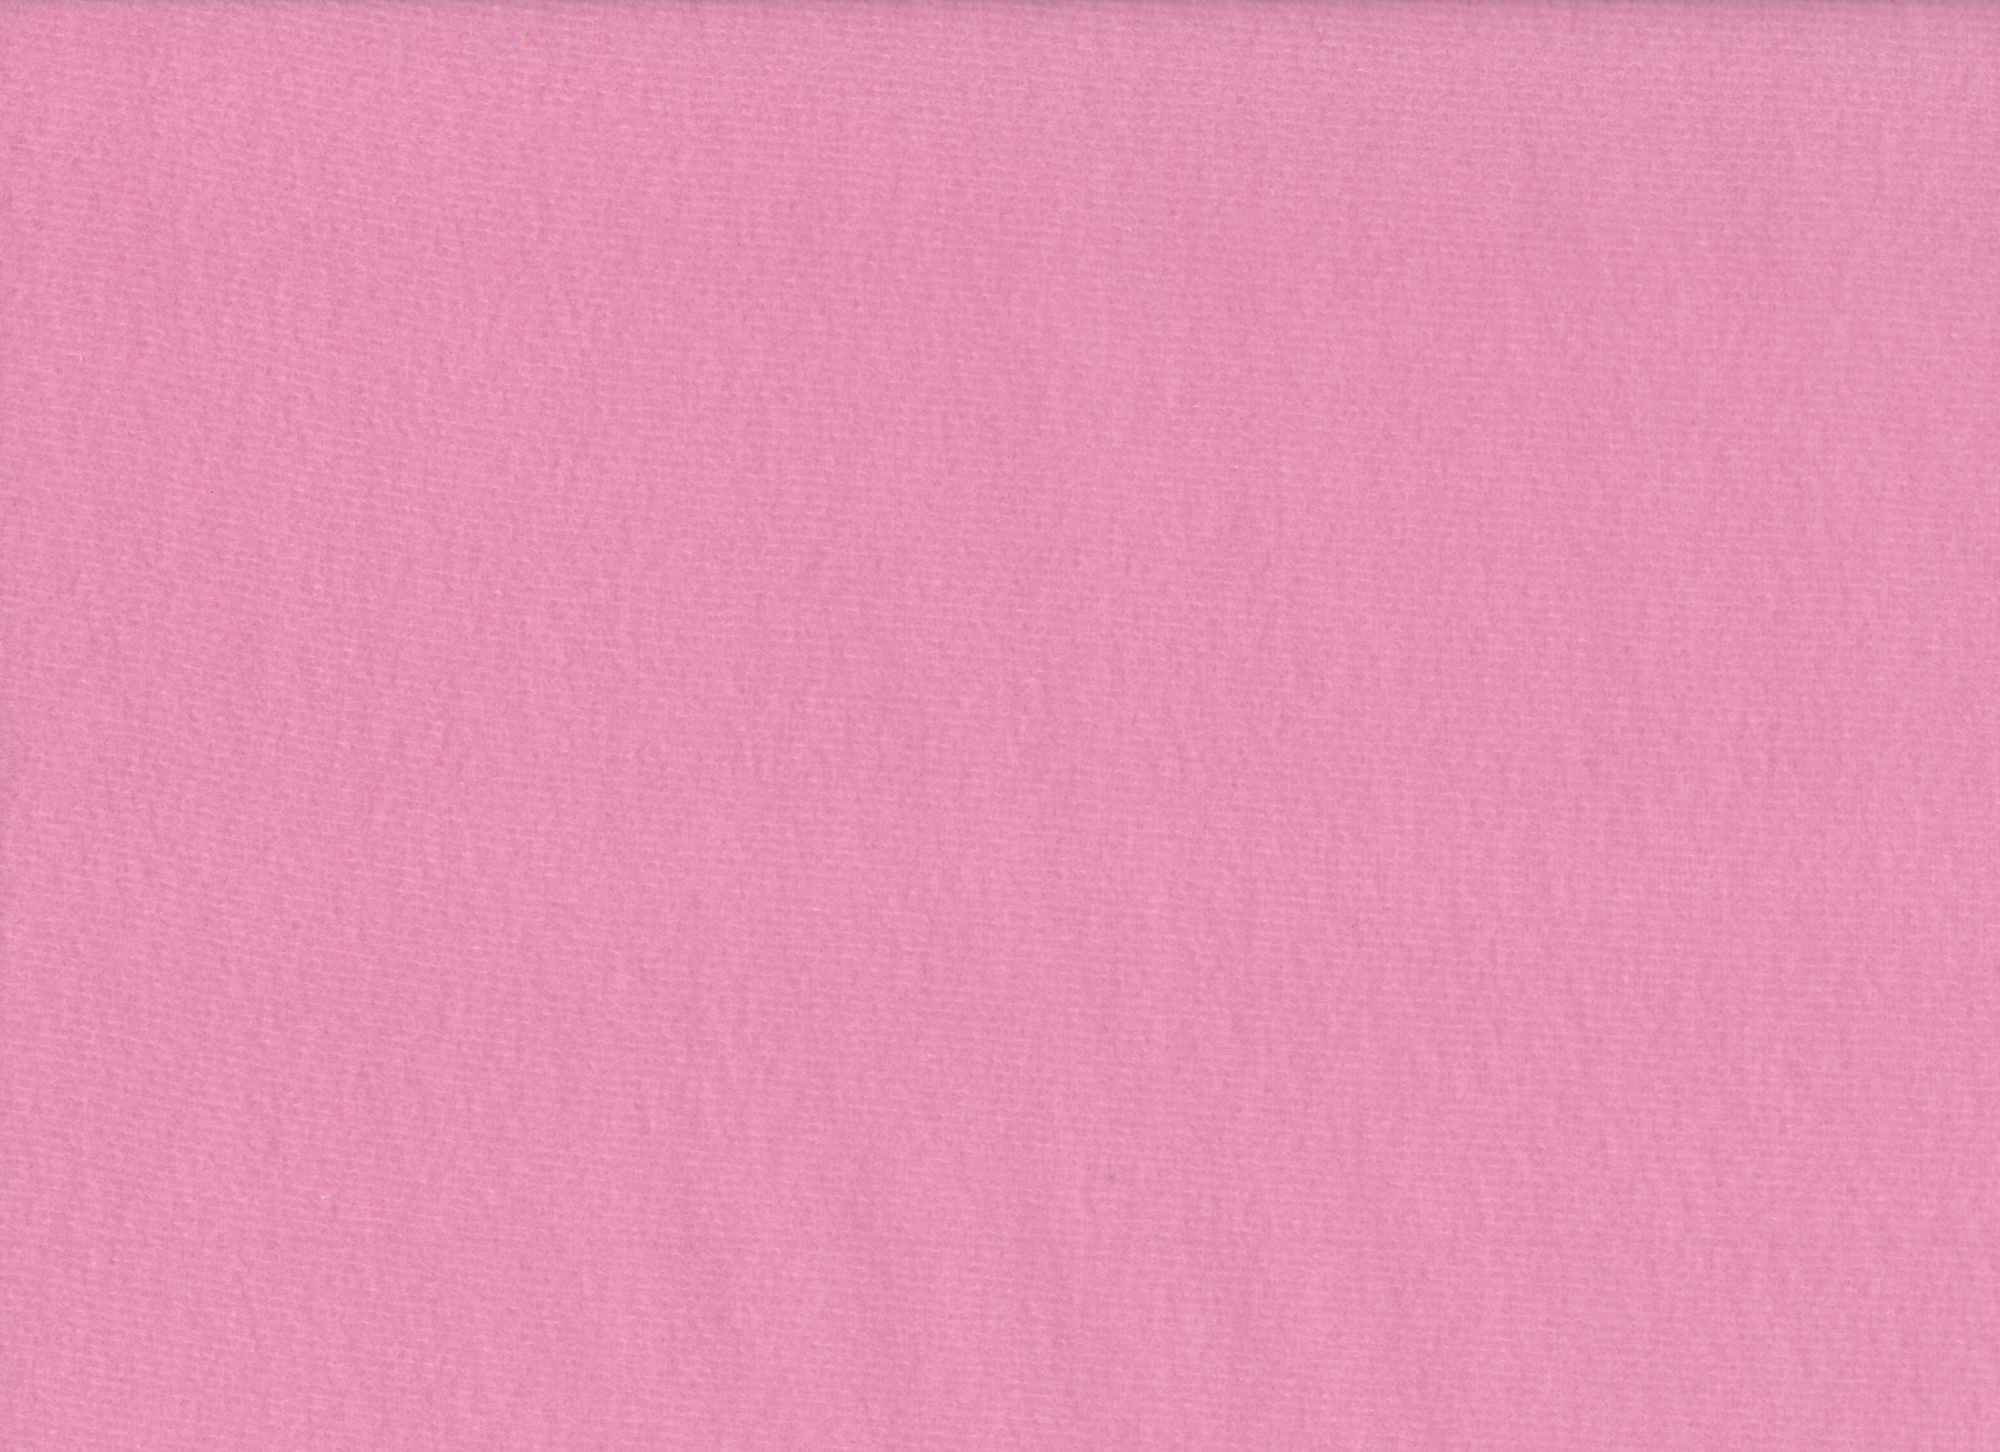 PROMO* Brushed Tricot Flannel - Dark Pink